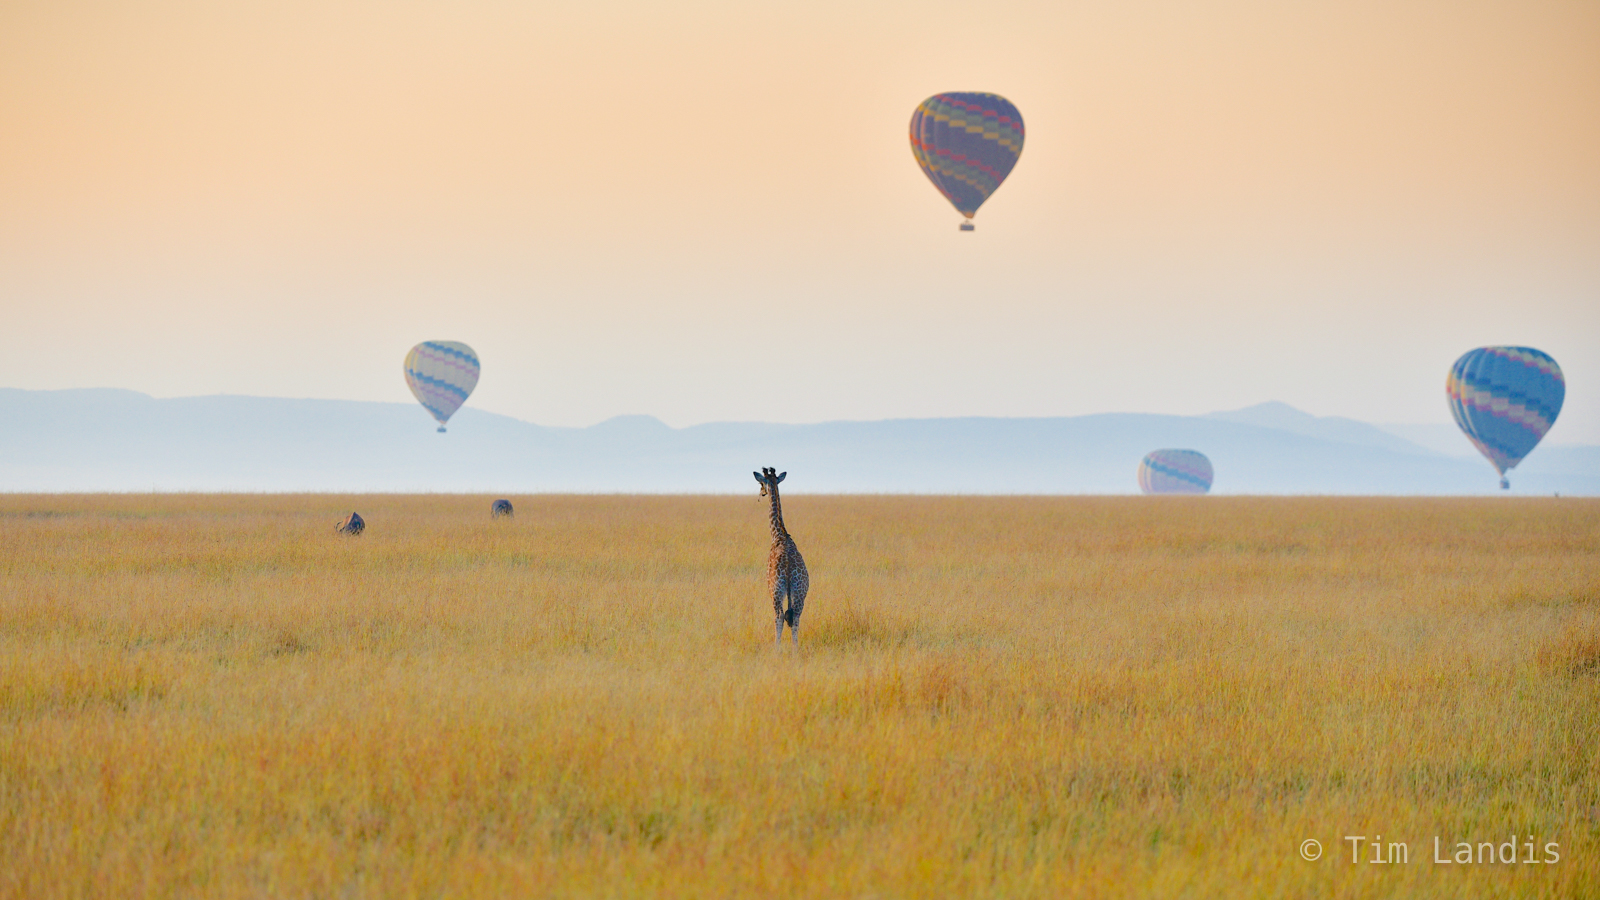 Masa Mara, baby giraffe with balloons, balloons, photo